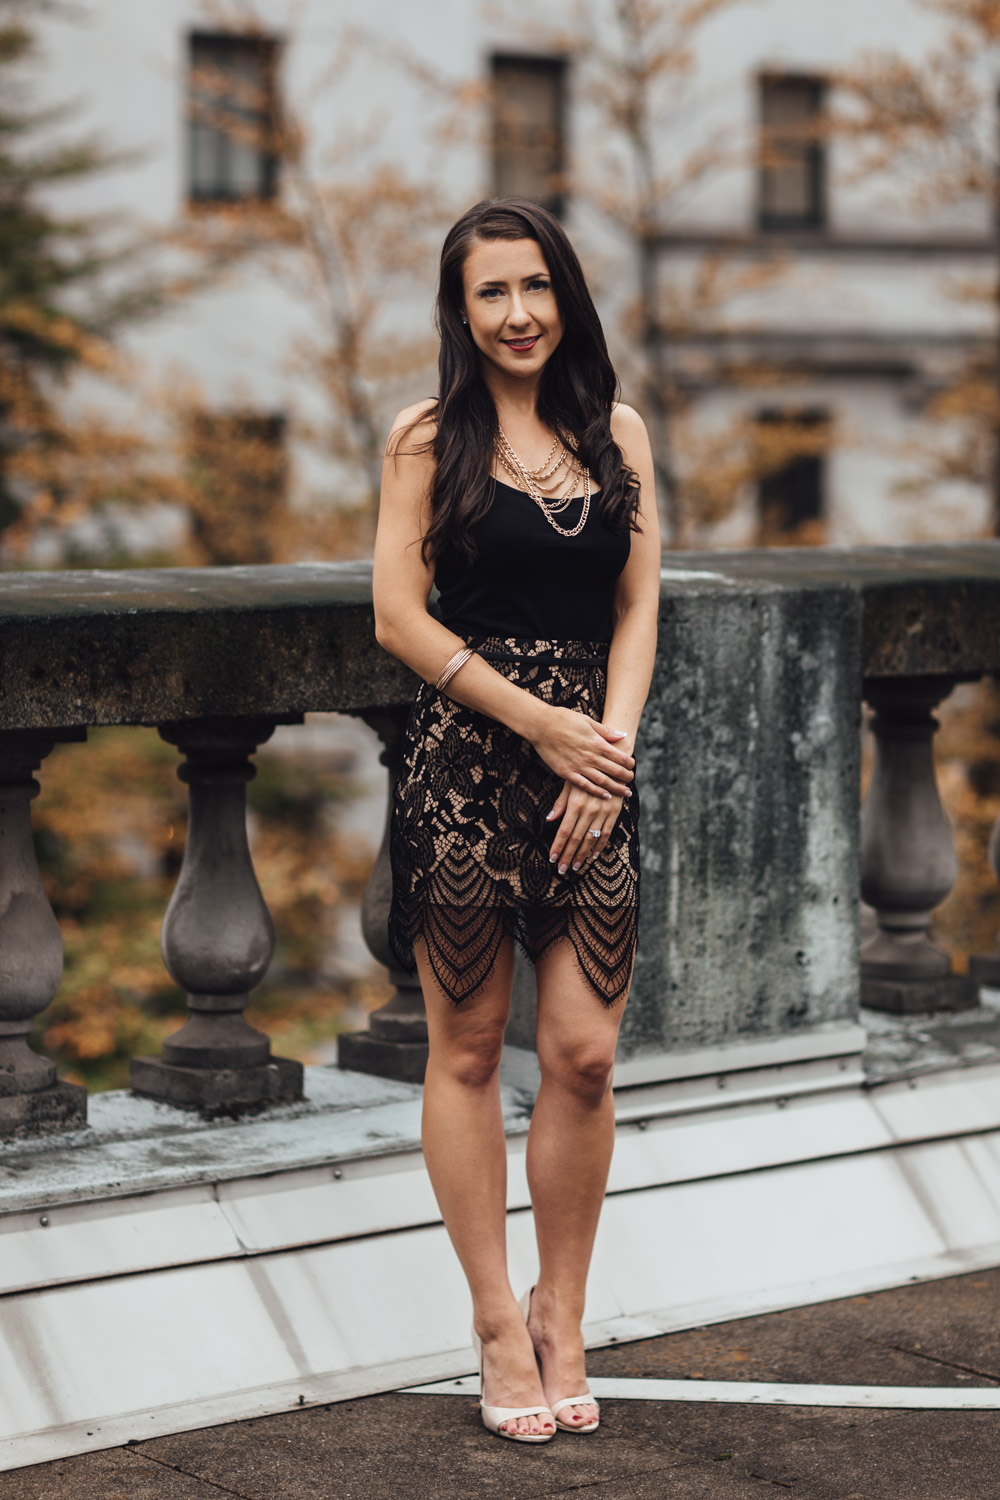 vancouver art gallery downtown engagement photography bc bride